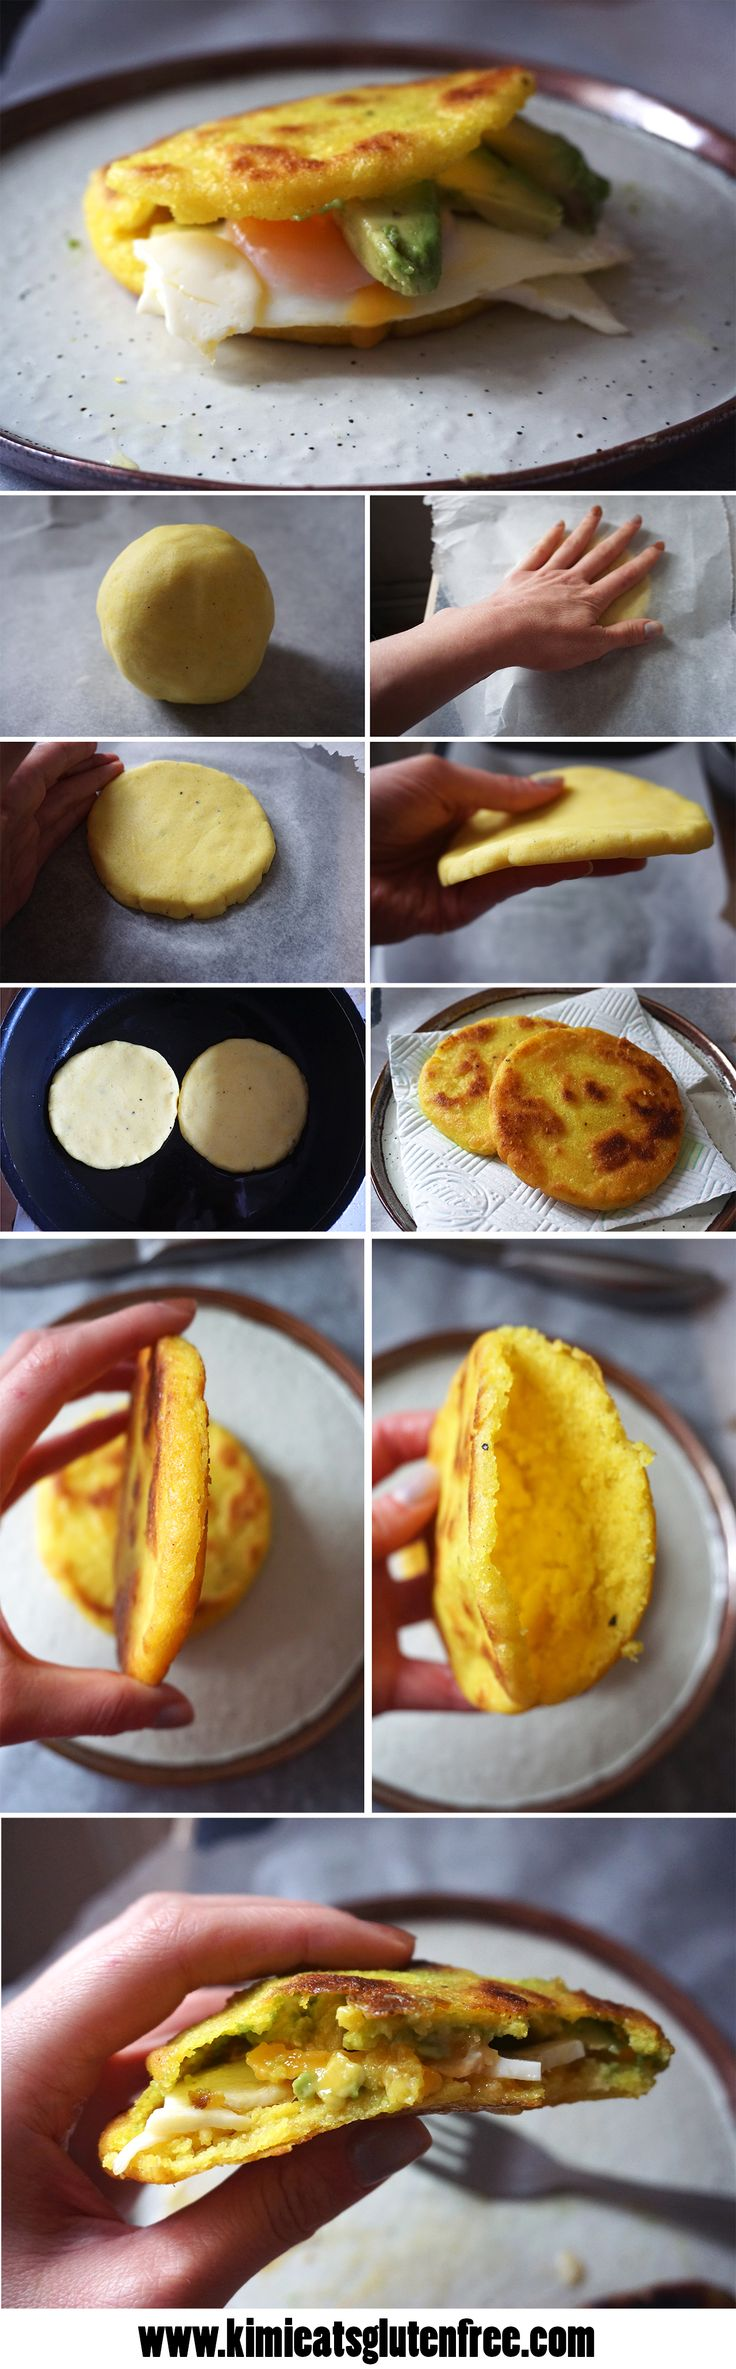 The 25 best american food ideas on pinterest american recipes arepas american cornamerican dinnergluten forumfinder Gallery